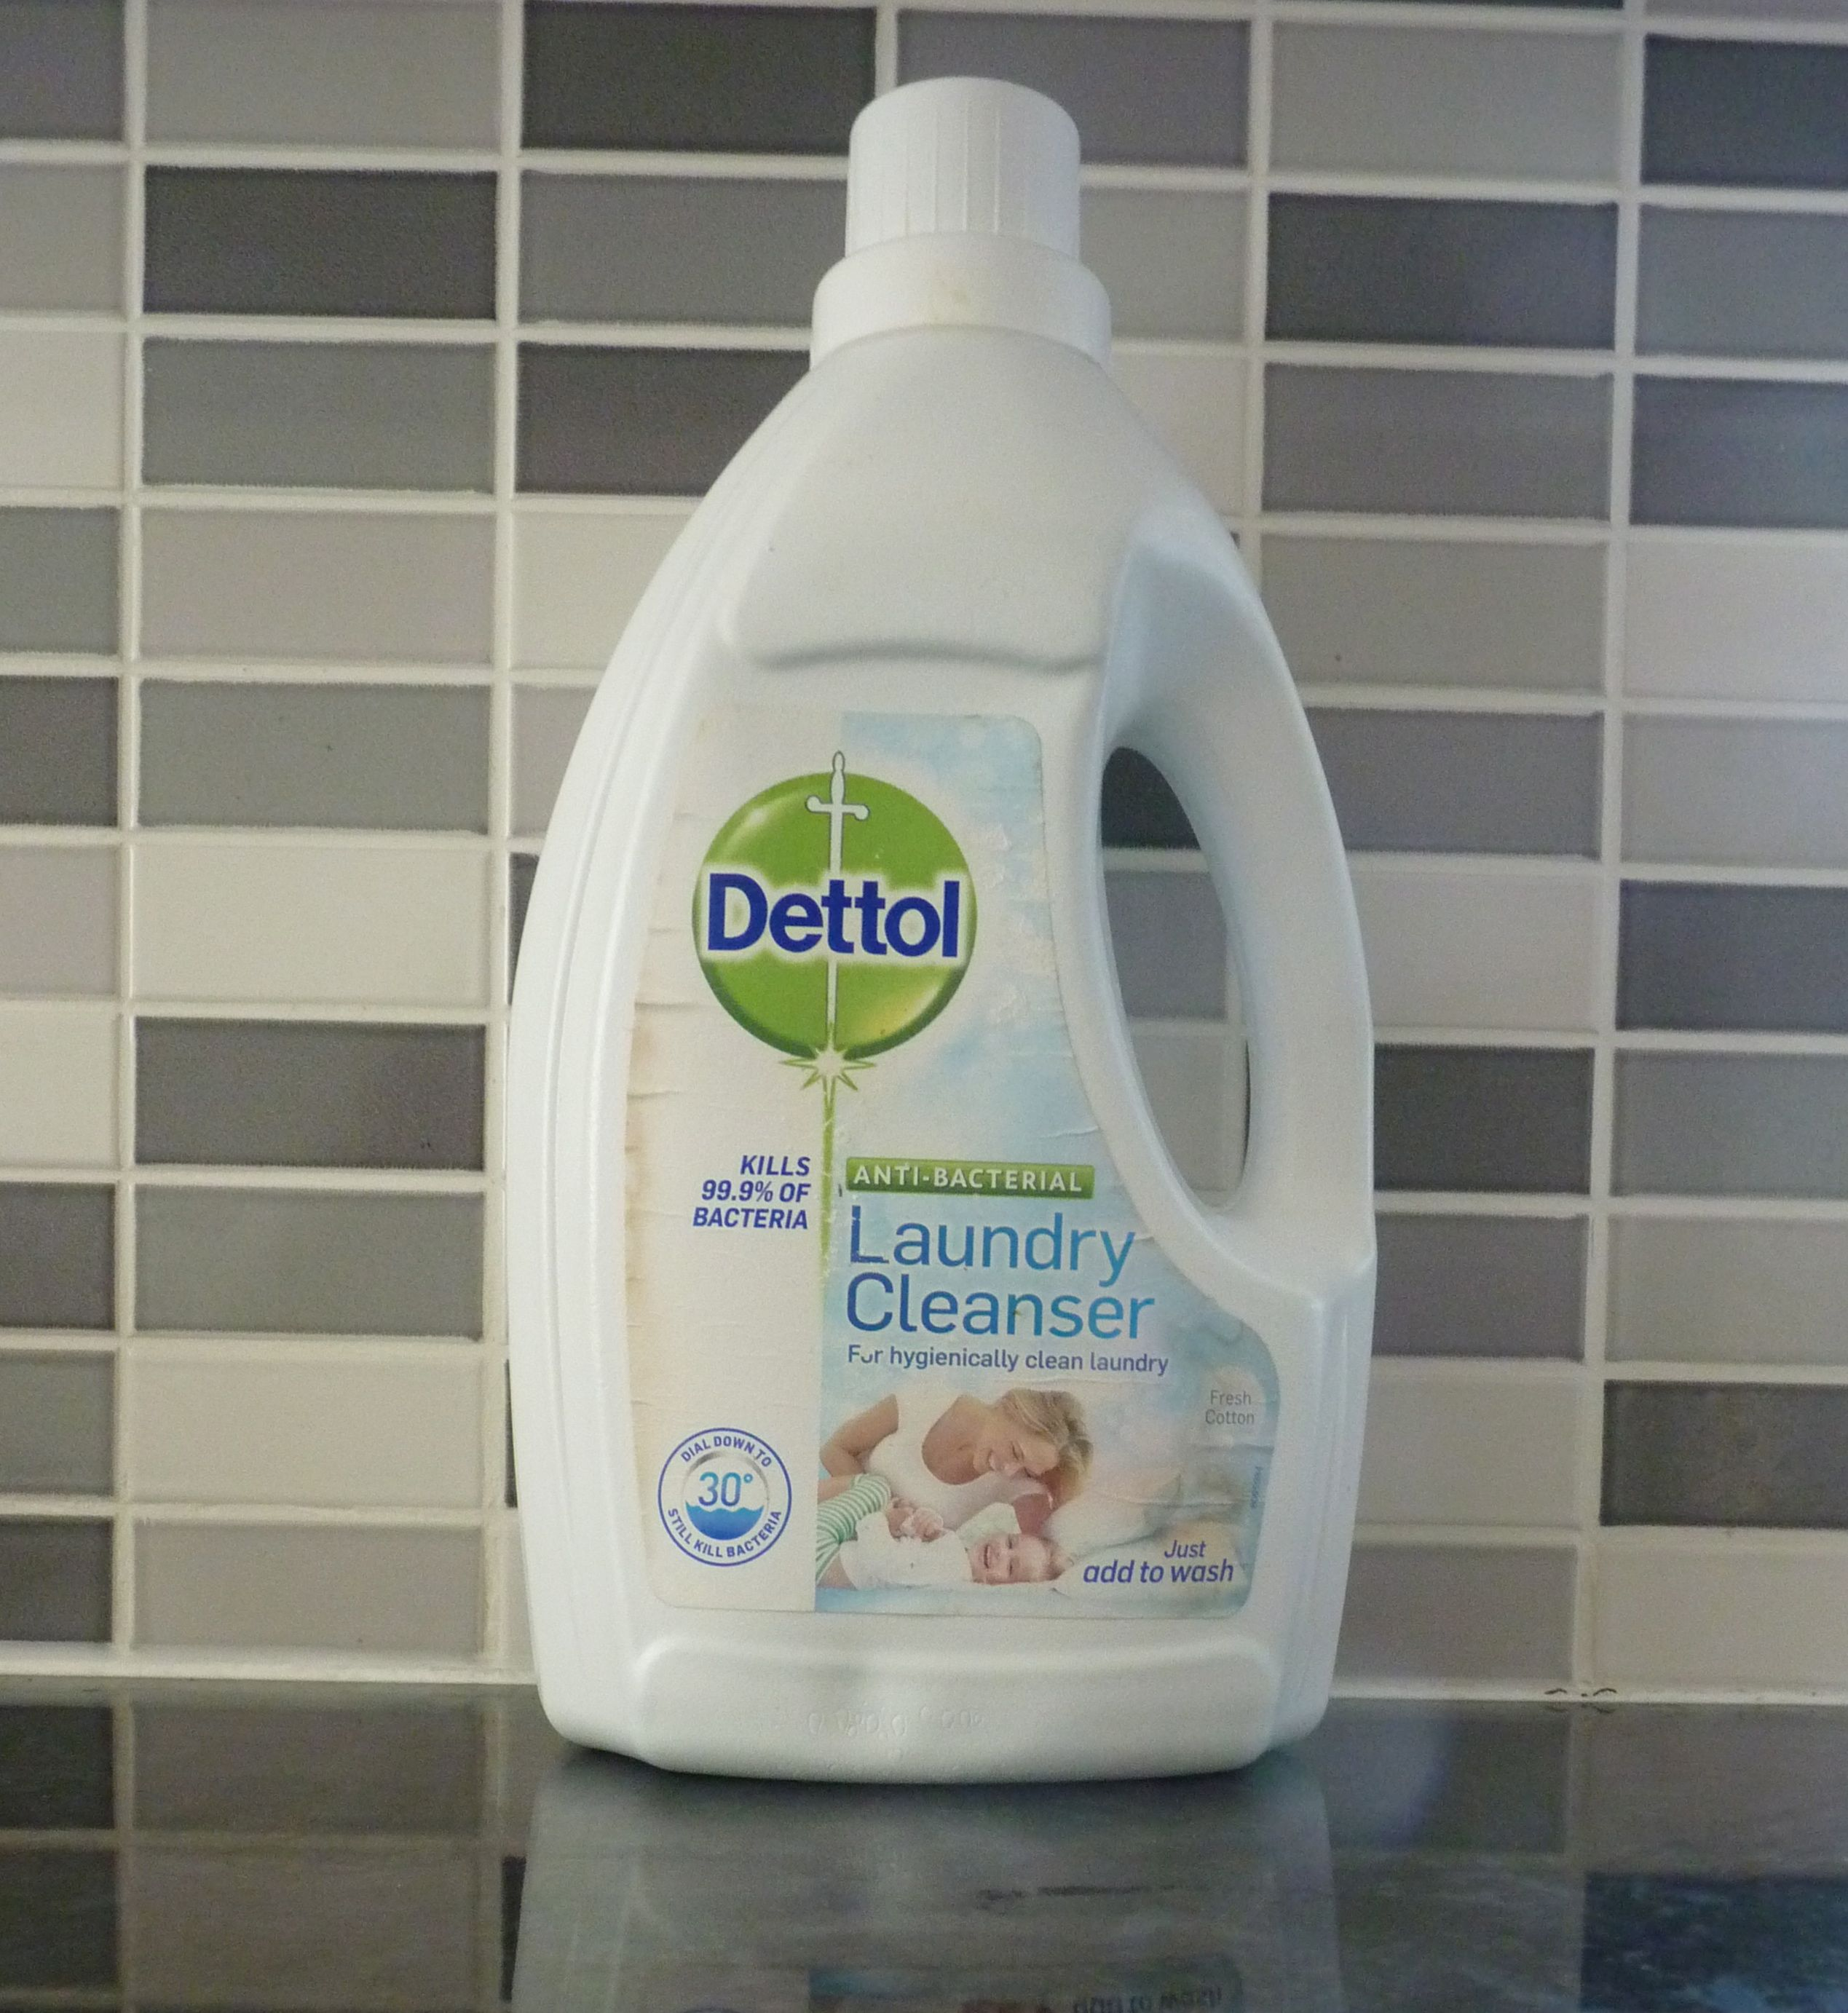 Dettol Anti Bacteria Laundry Cleaner Review